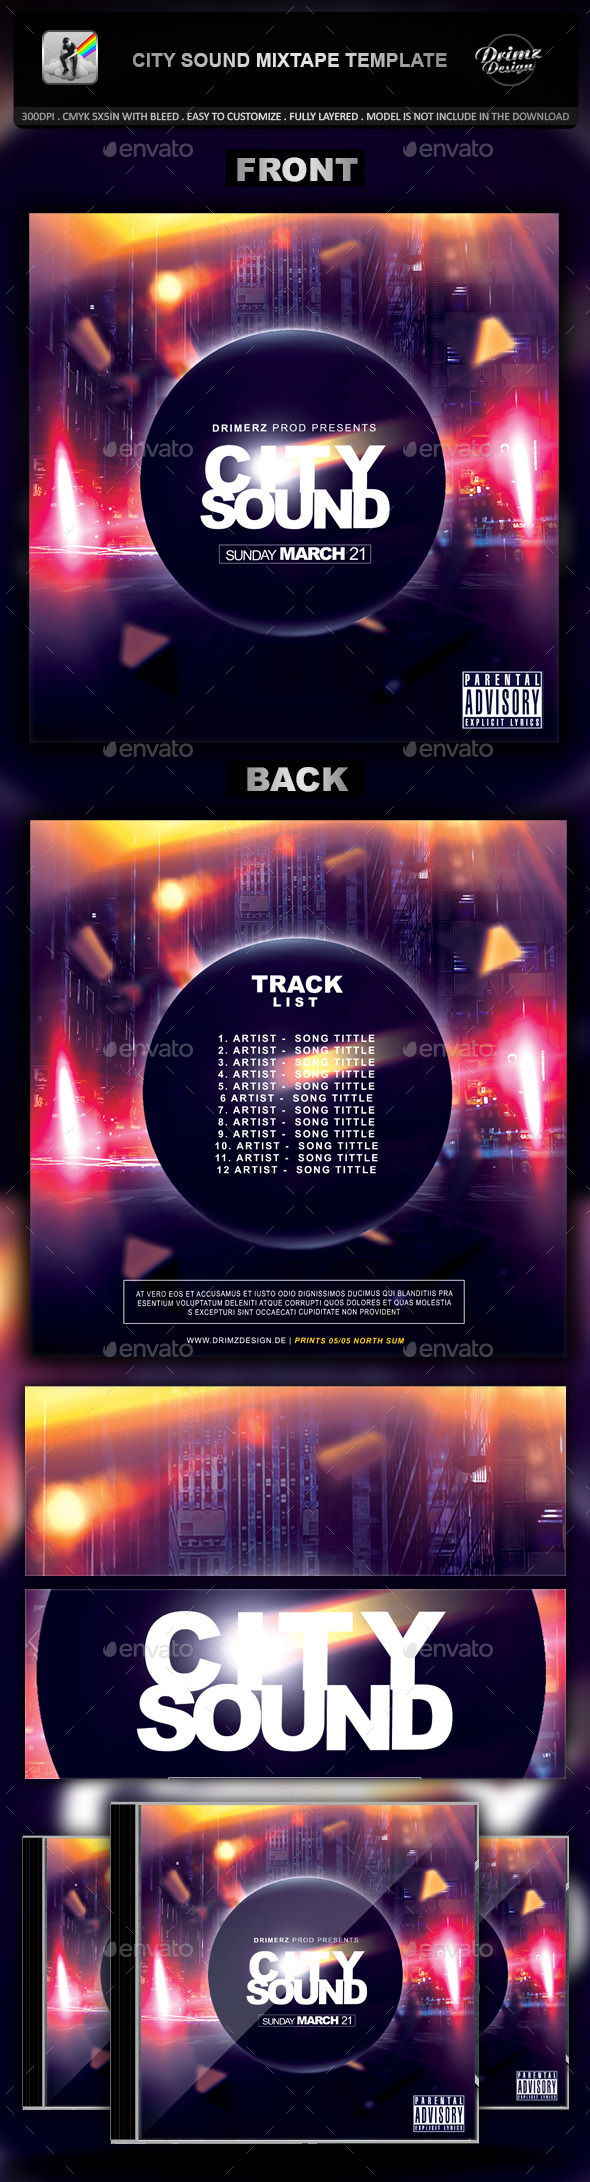 GraphicRiver City Sound Mixtape Template 9471177